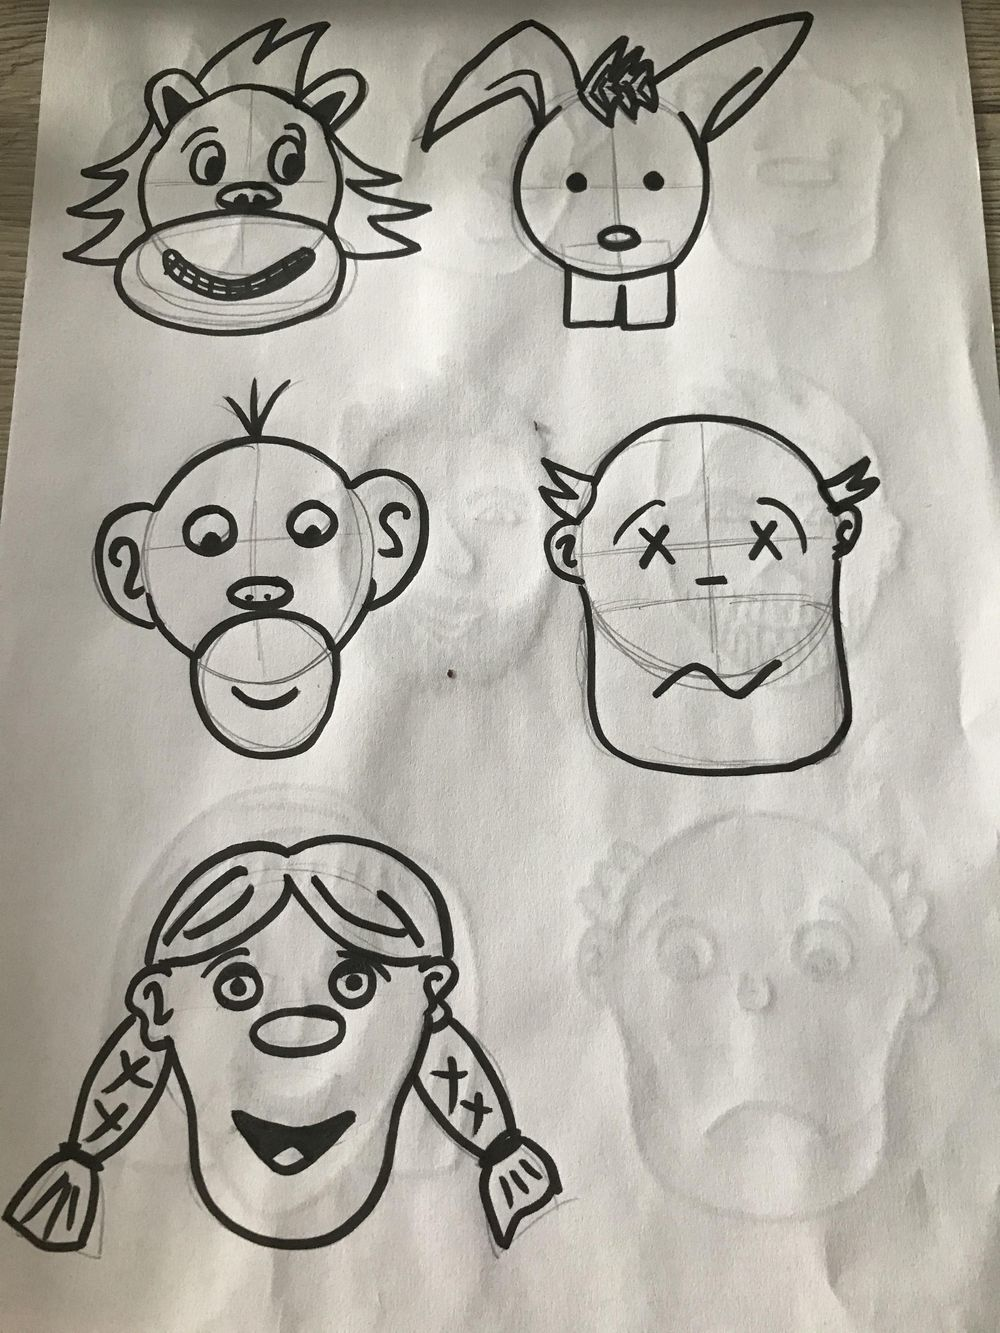 Cartooning, self portraits and stuff - image 4 - student project